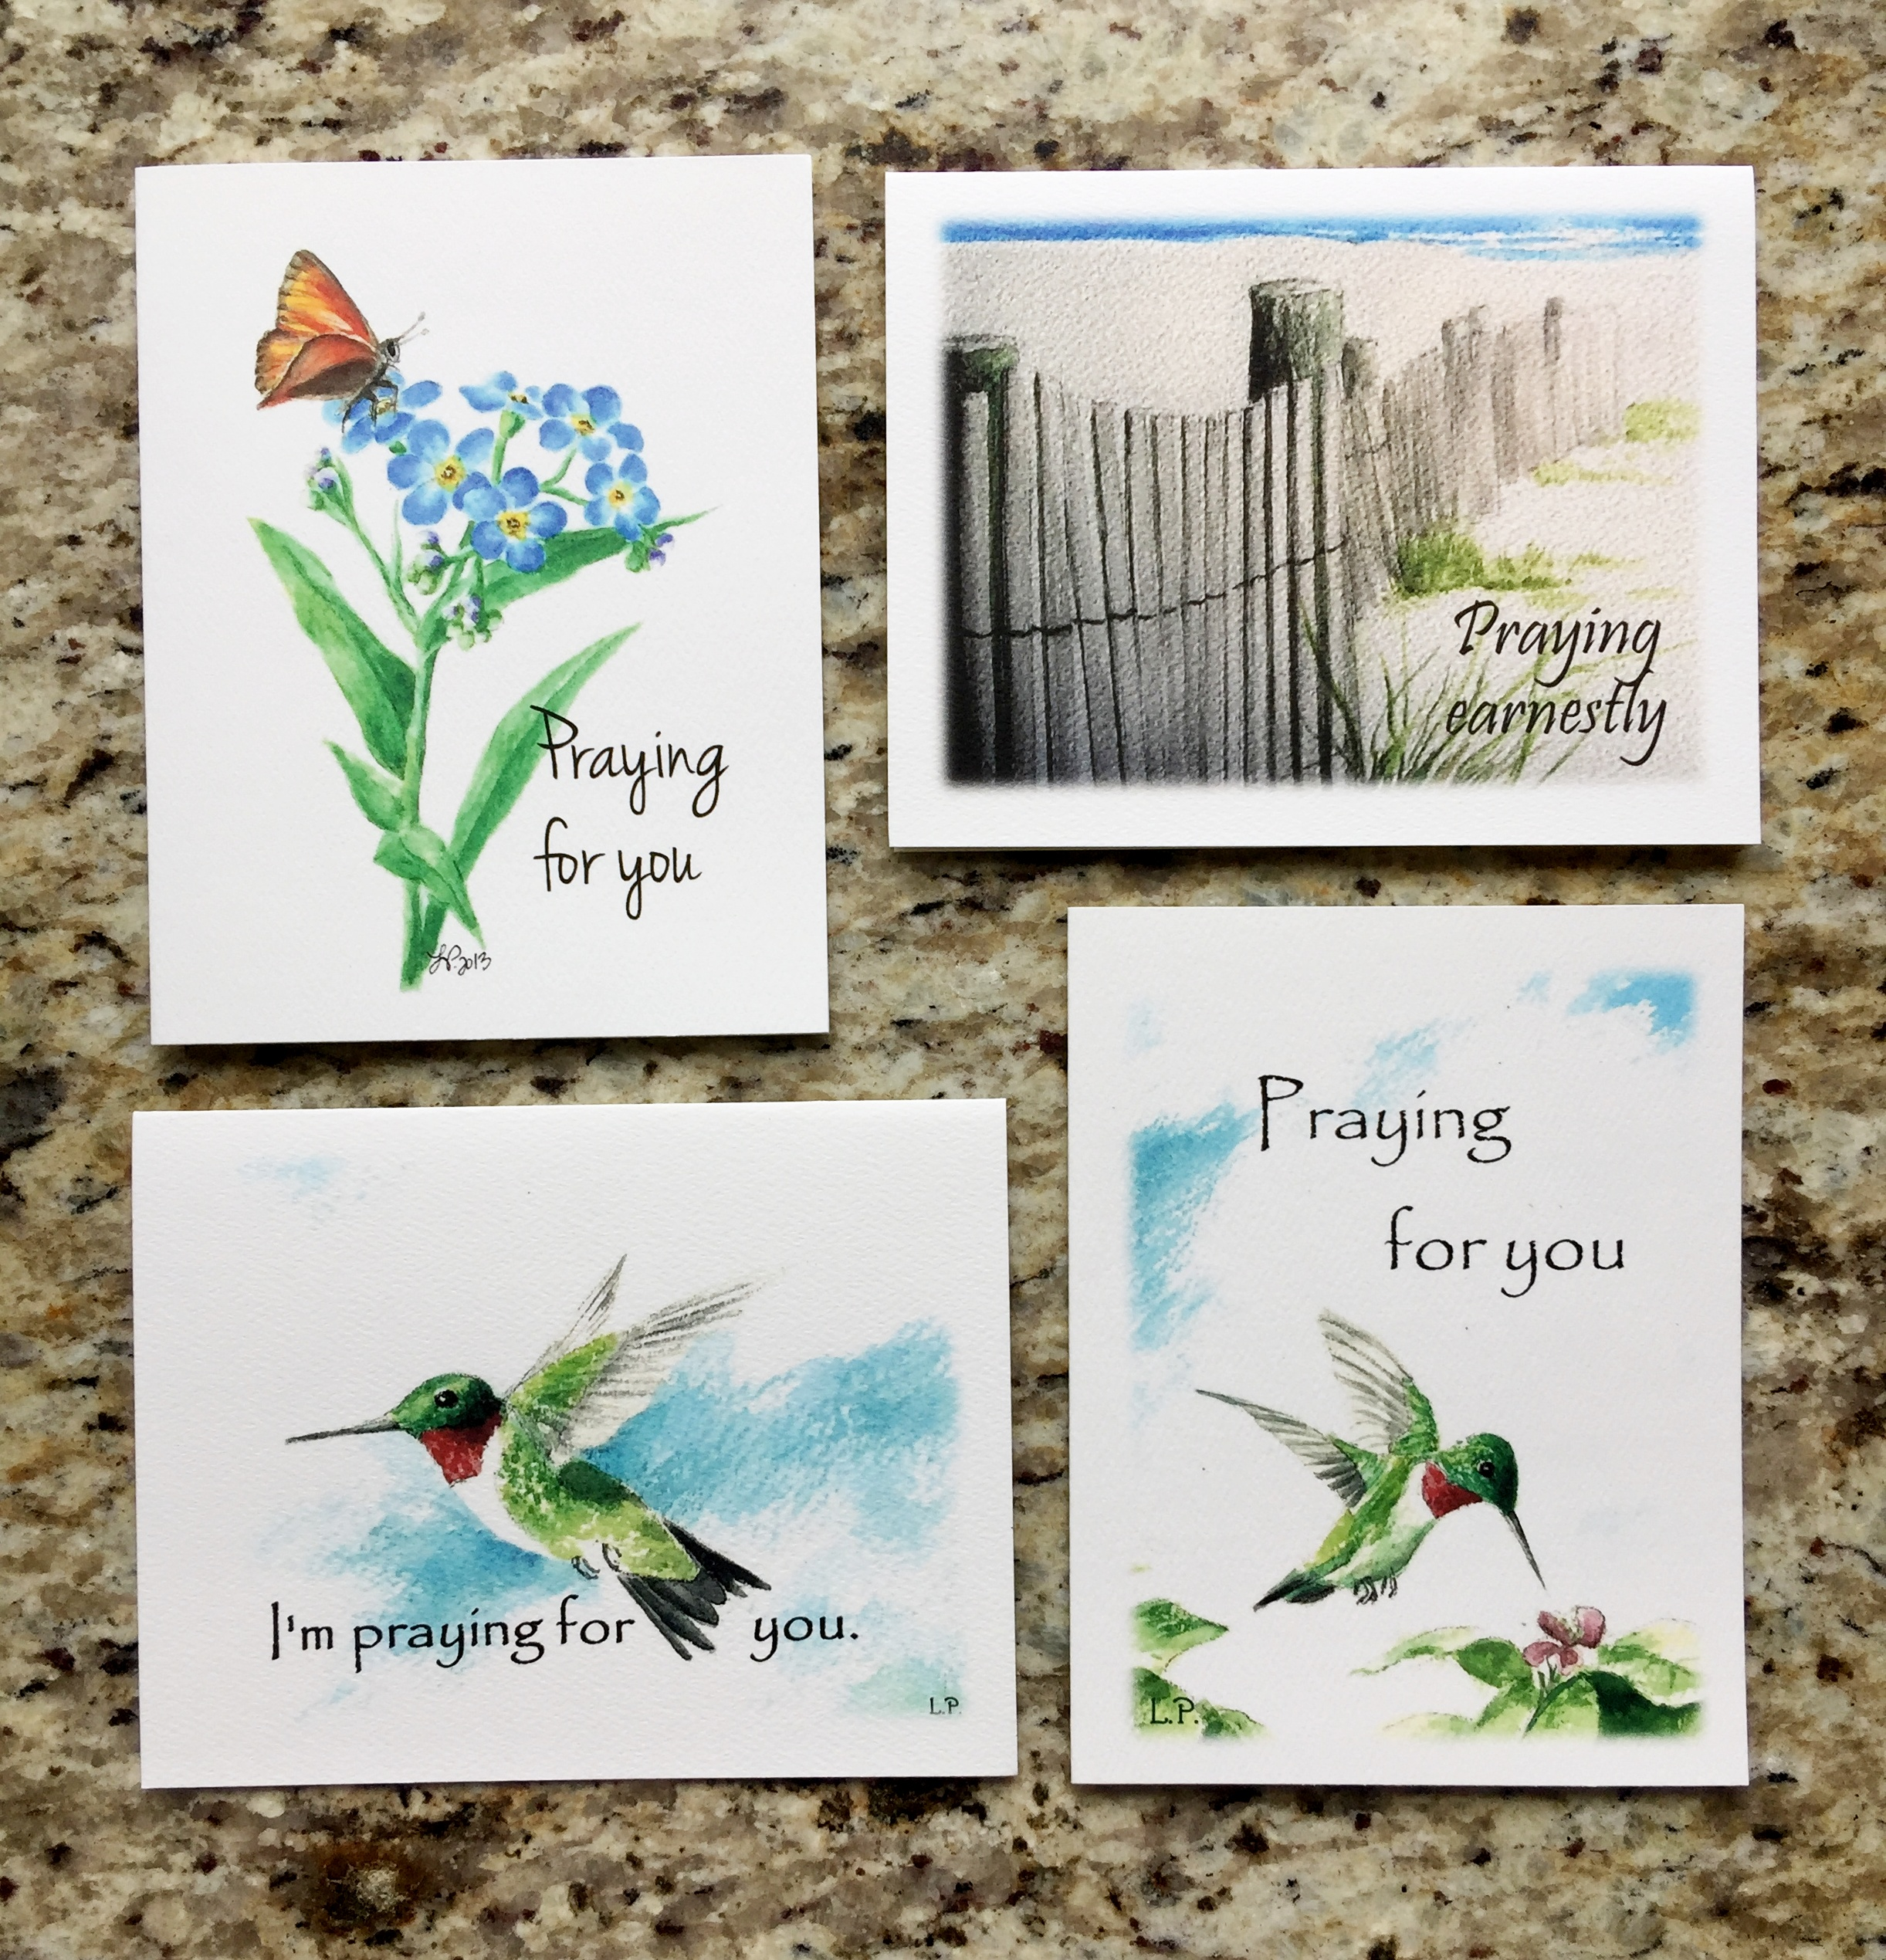 PRAYING FOR YOU SET - 2 each of 4 designs - Click photo for details.